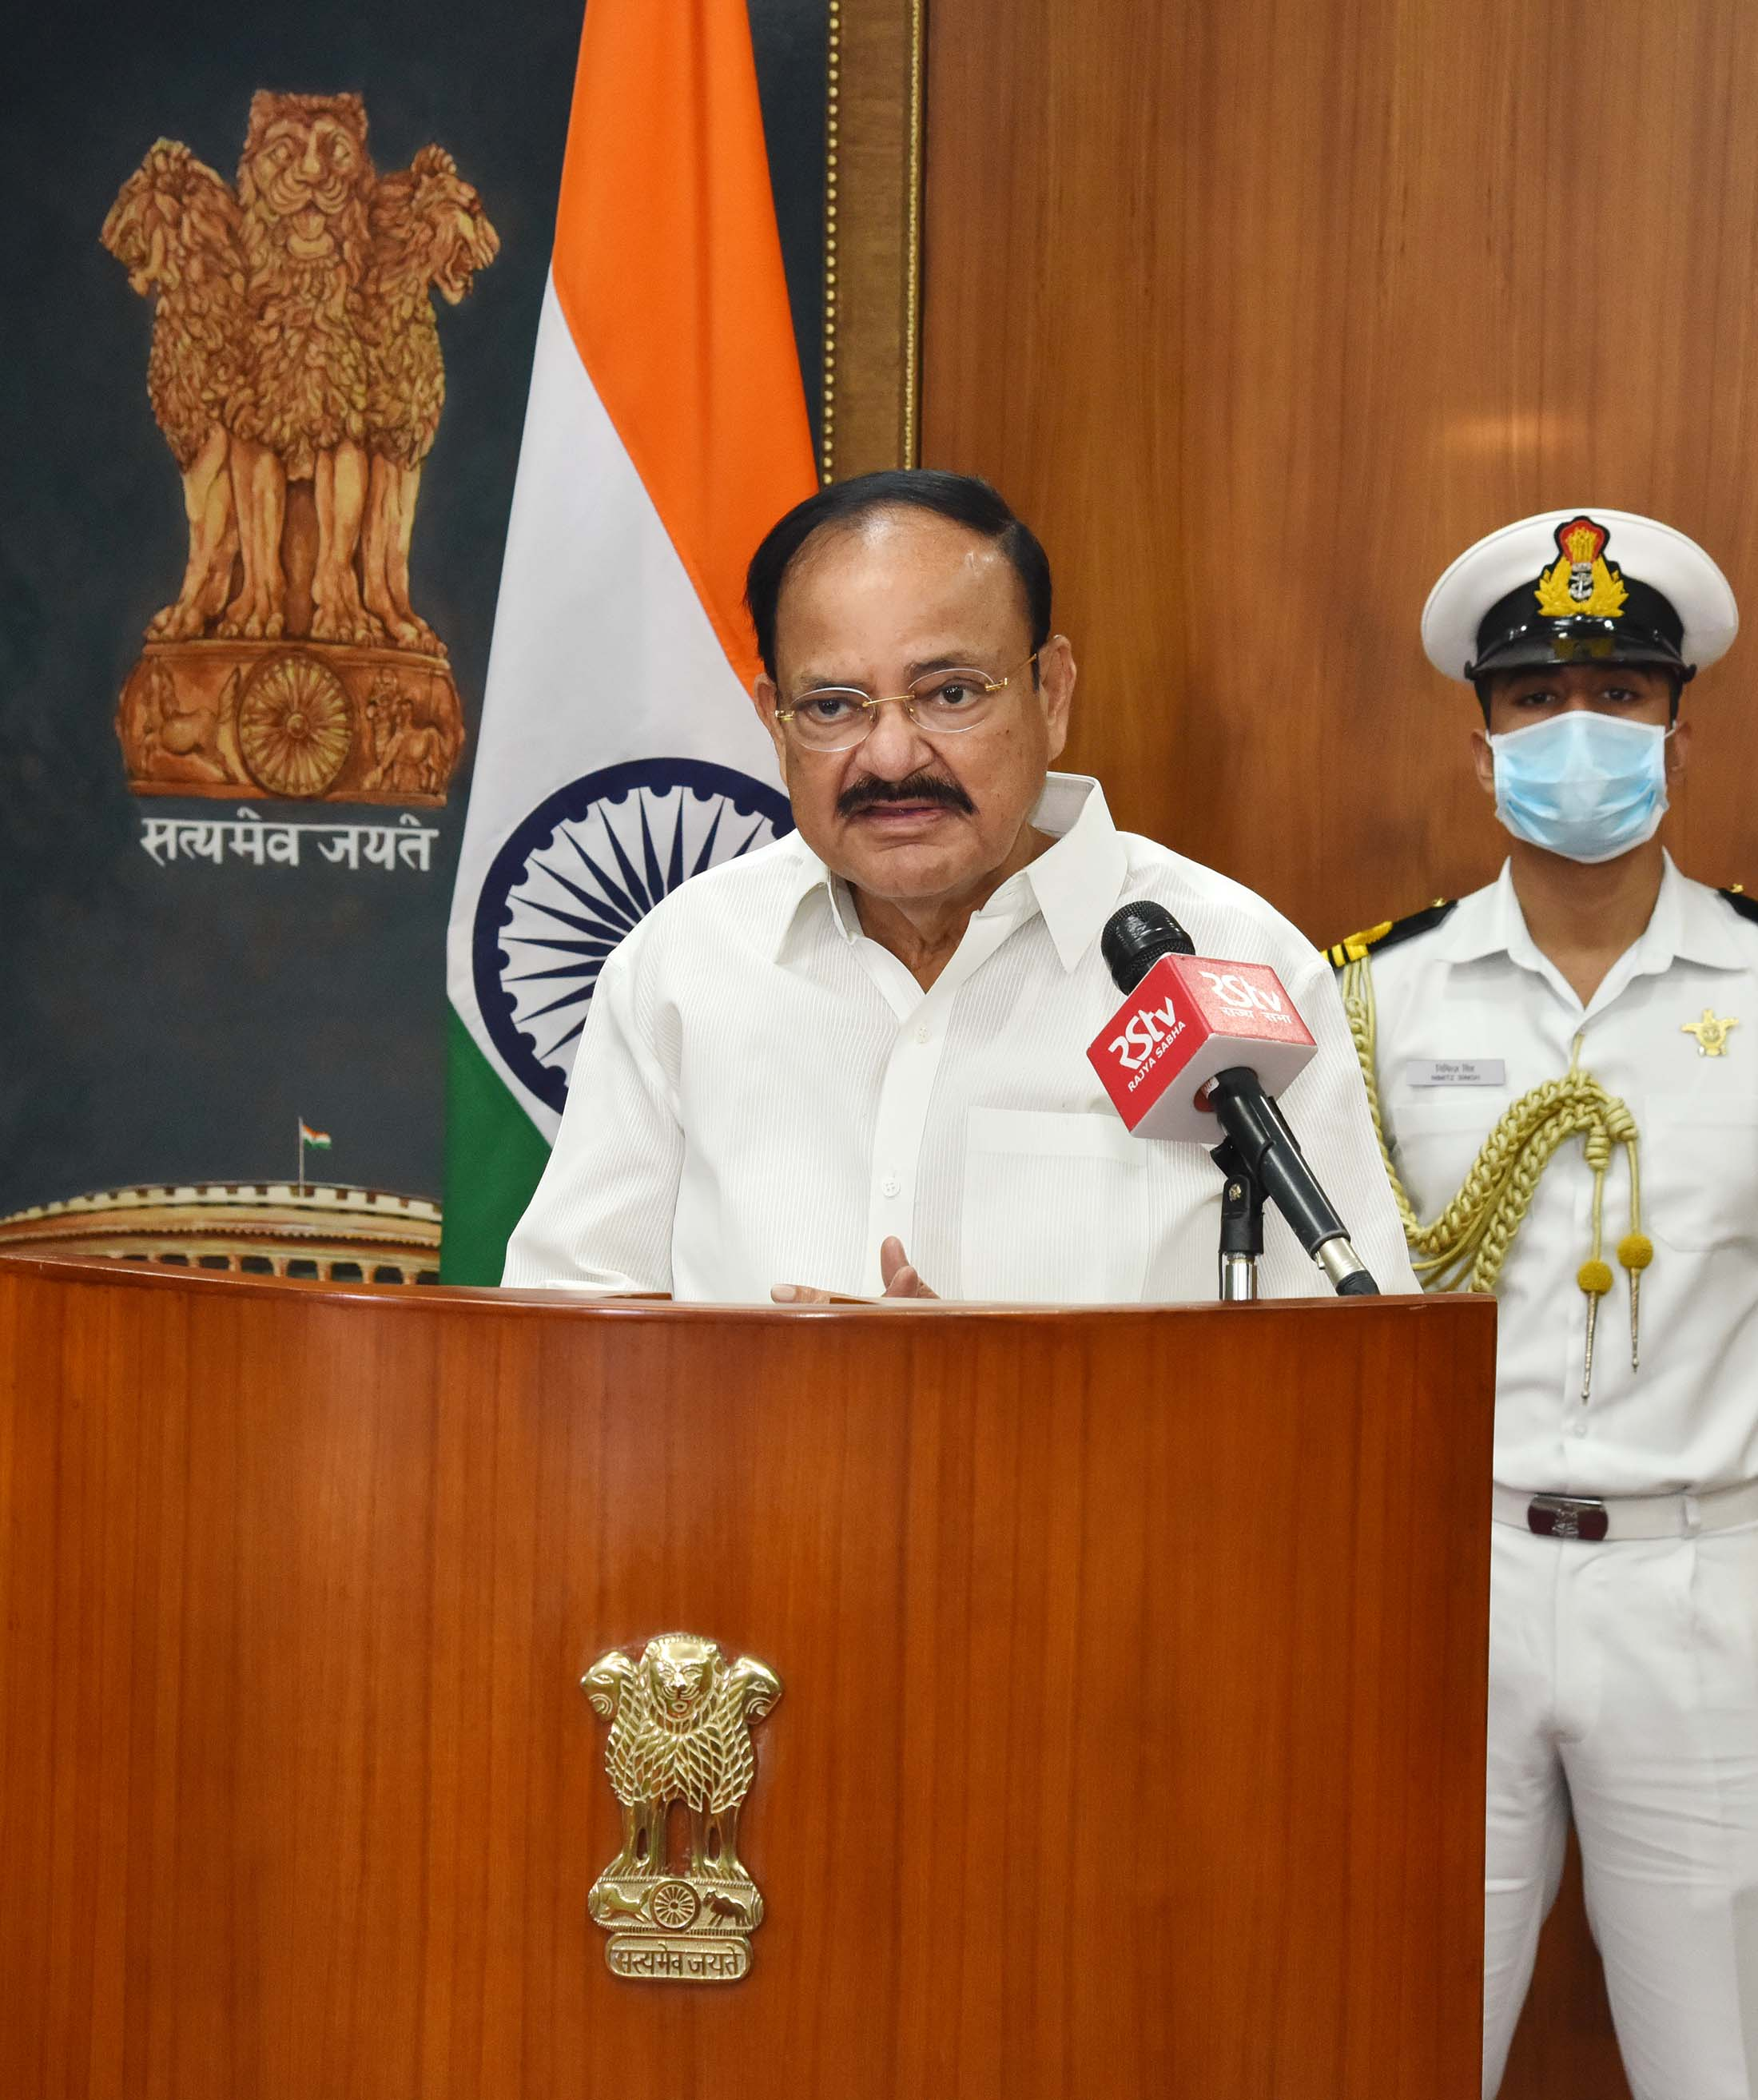 The Vice President, Shri M. Venkaiah Naidu delivering his congratulatory address at a virtual event to felicitate the Panjab University for winning the Maulana Abul Kalam Azad Trophy for the year 2020, from New Delhi on 11 September 2020.